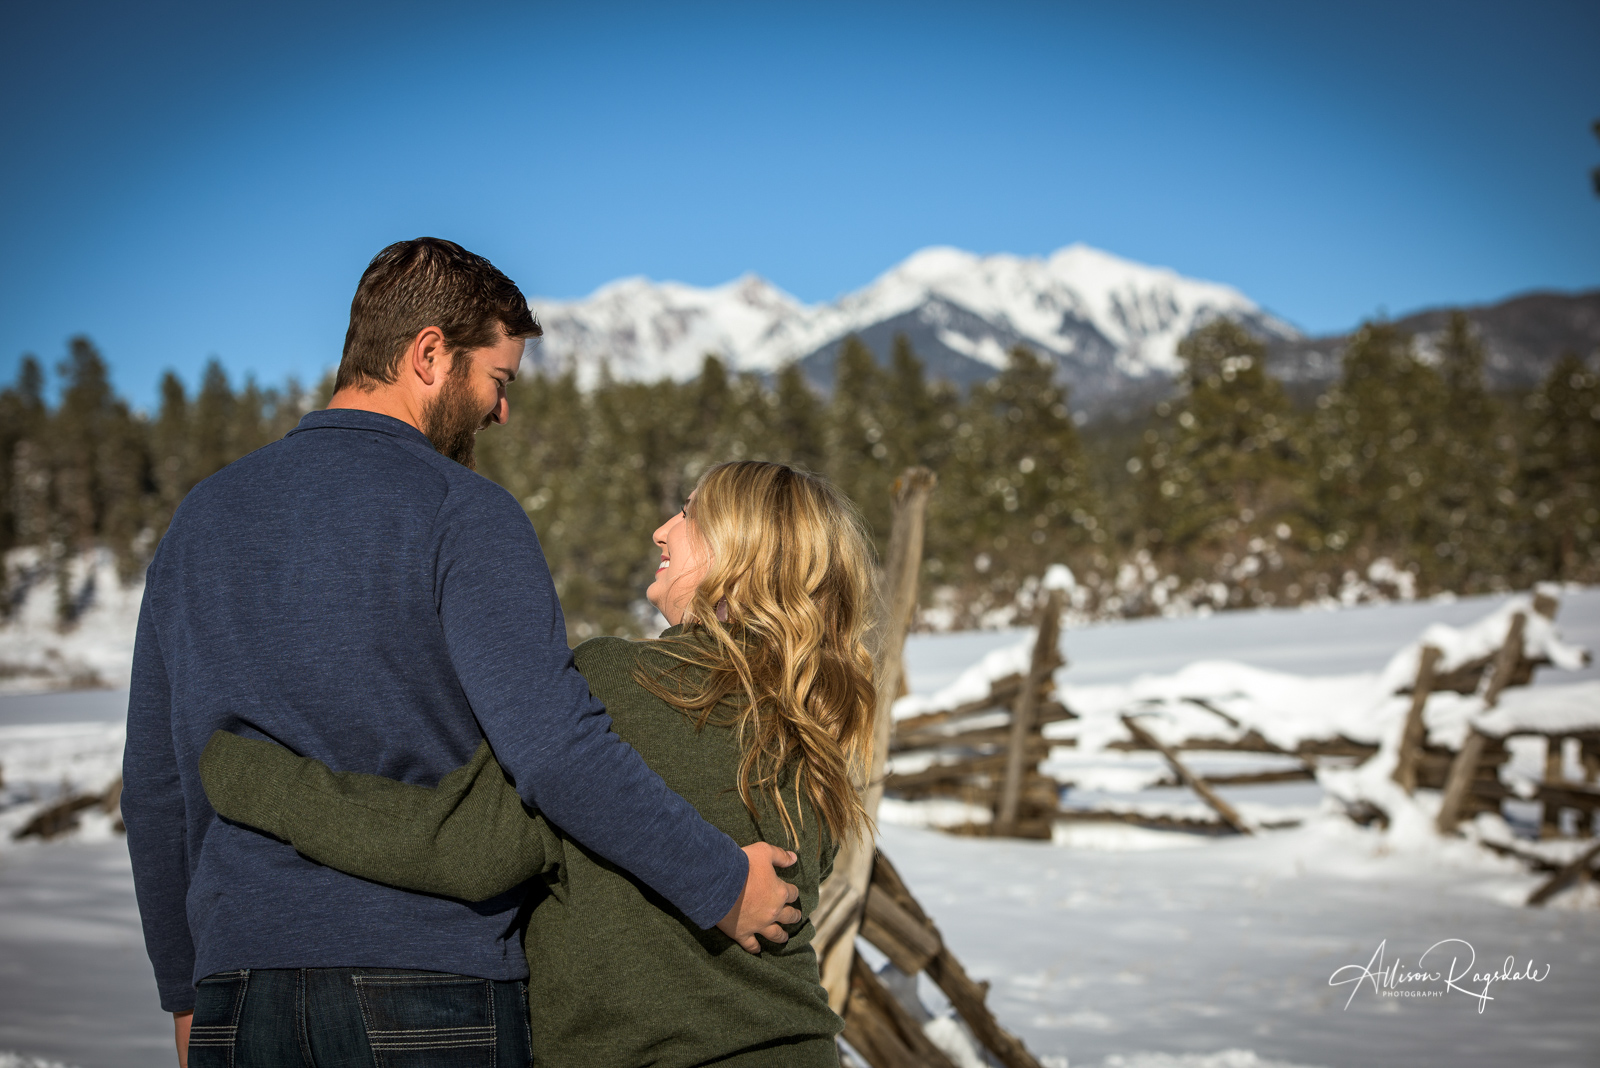 Lauren and Connor's Engagement Photoshoot | Durango, Colorado